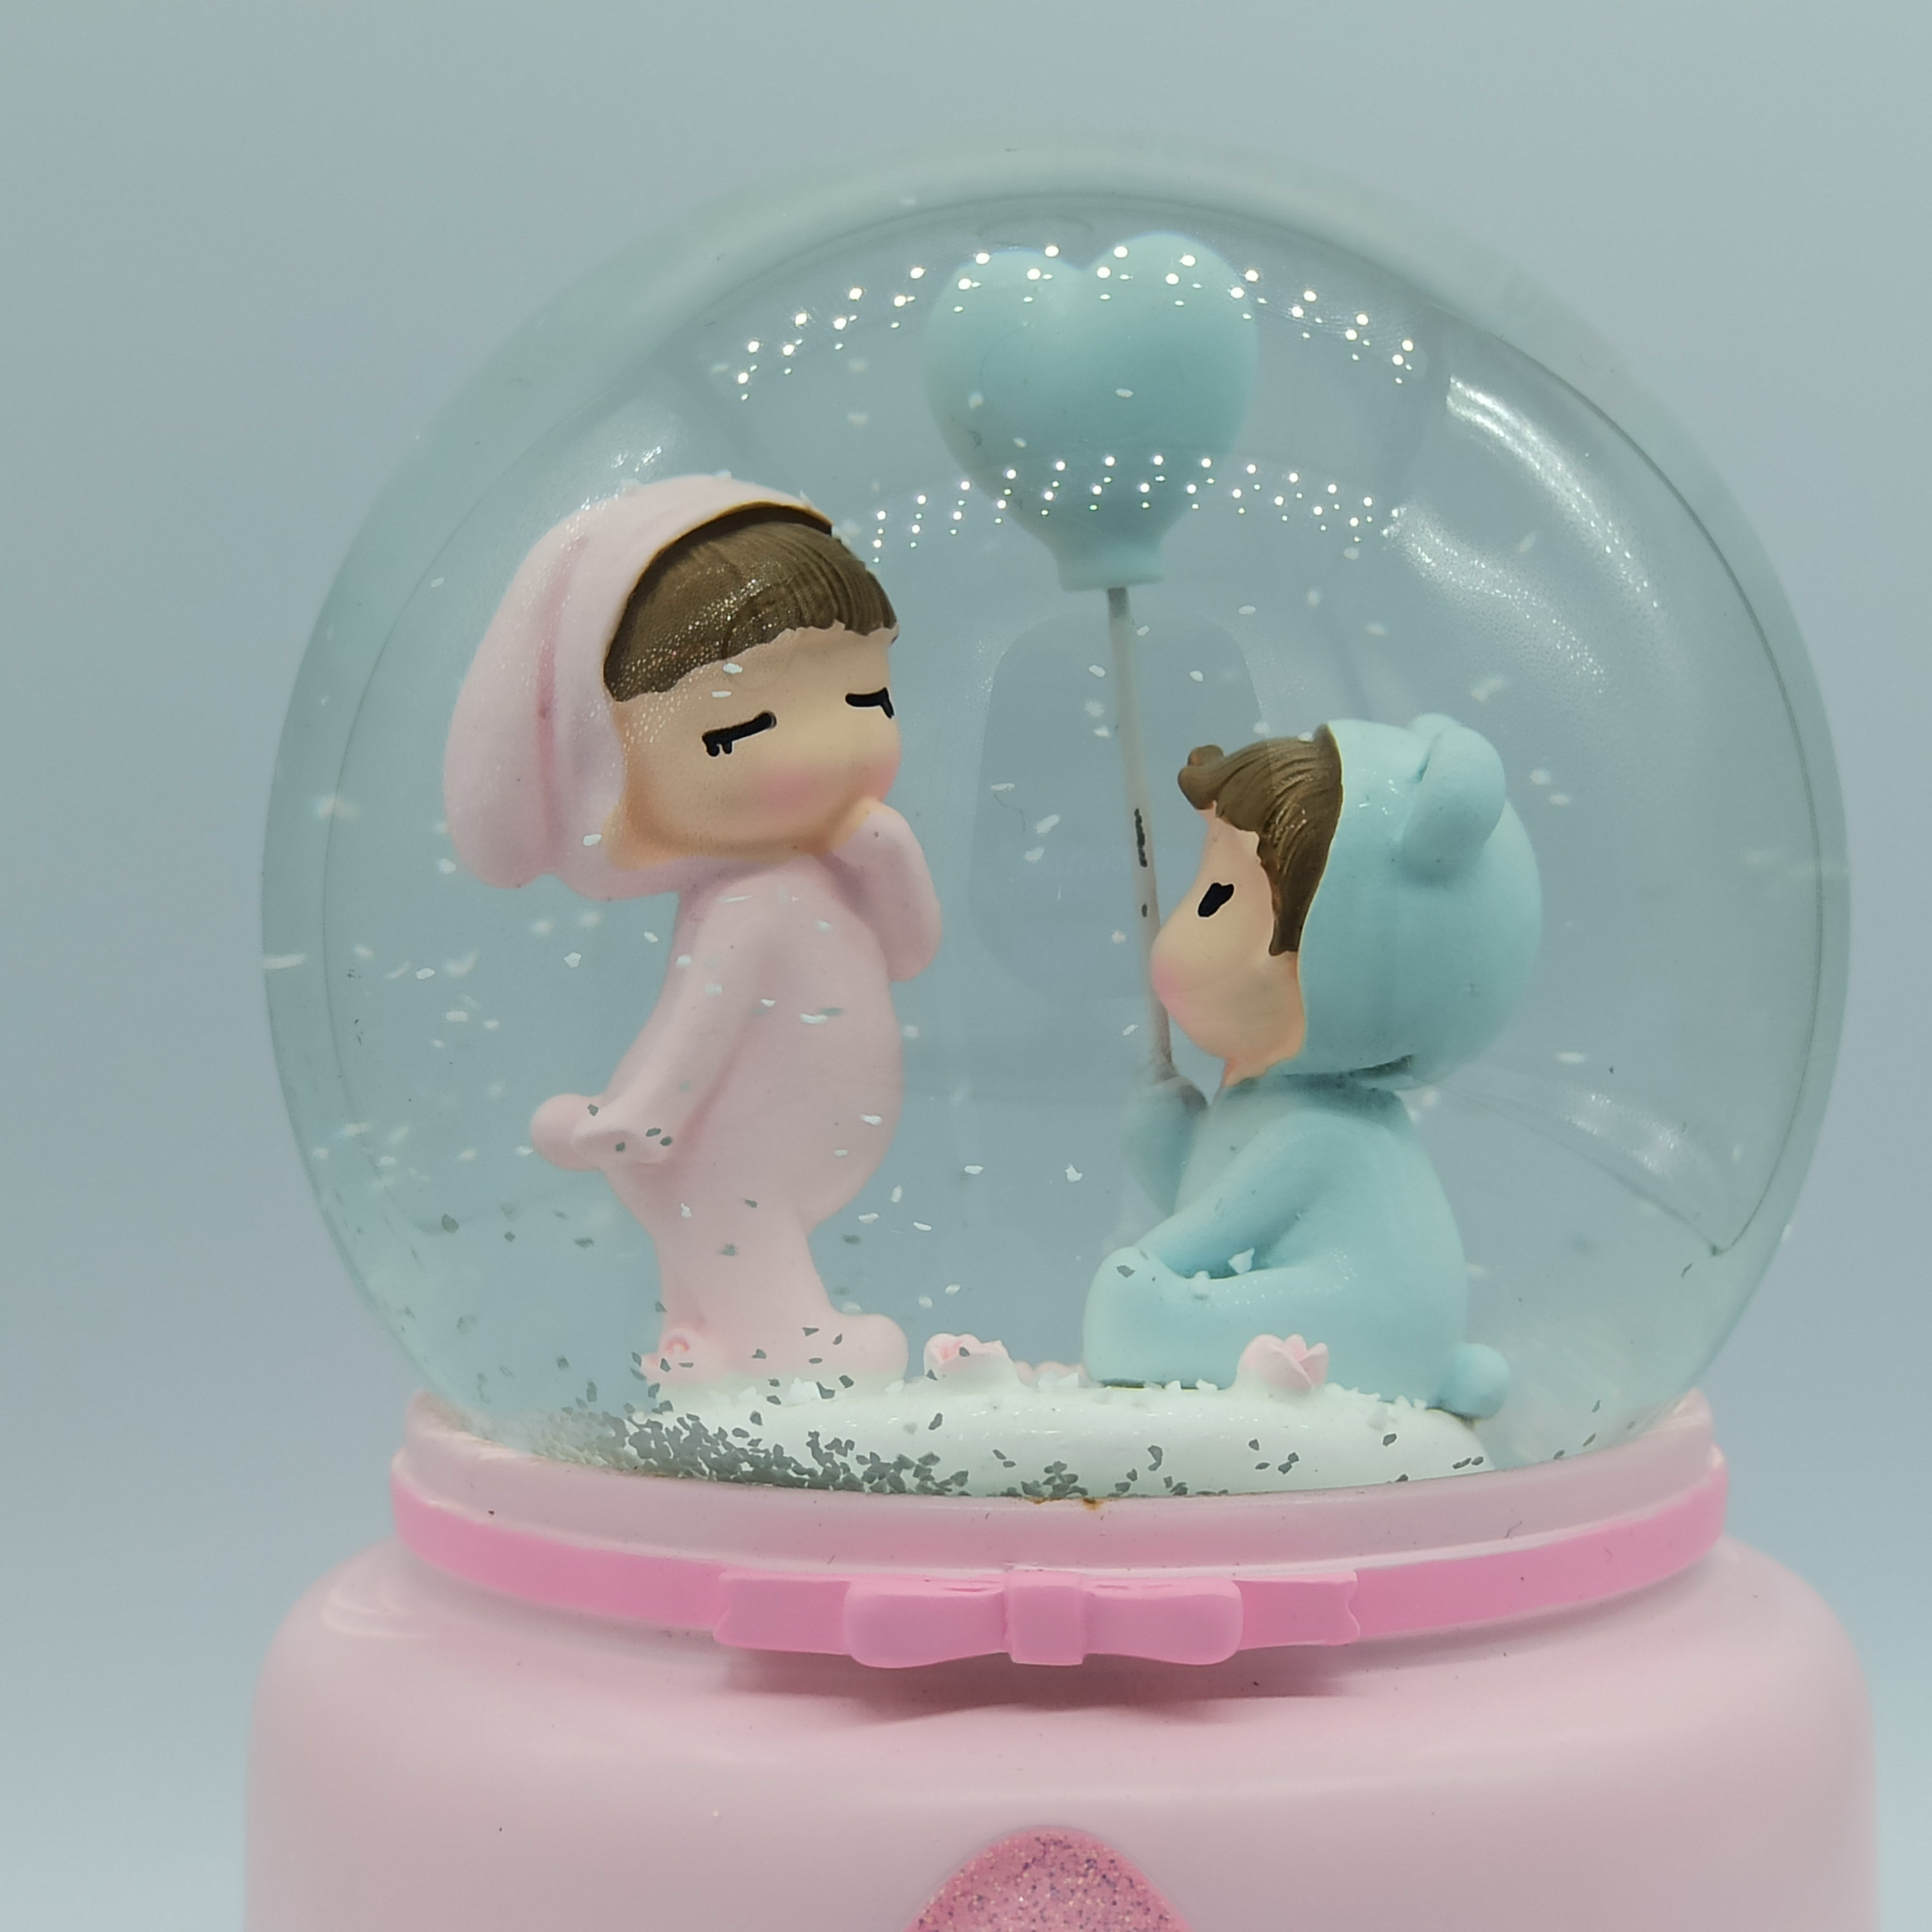 The Love Story: Cute Lovers Snow Ball, Gift for Couple